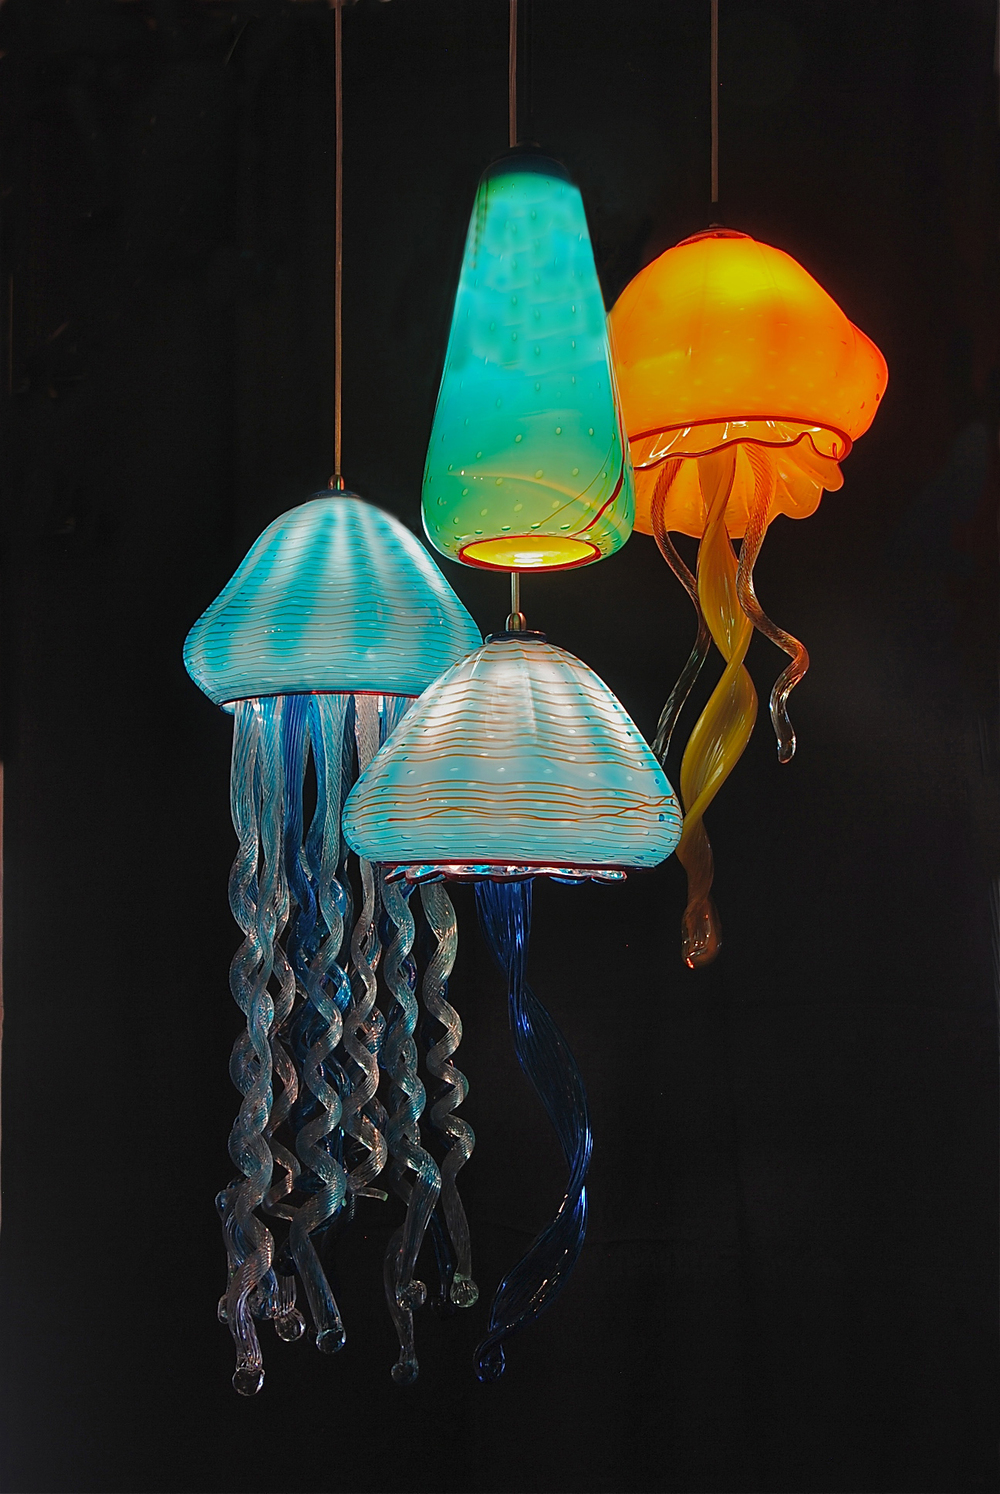 Striniartglasscustomlightingstriniartglasscustomlighting31 for Jellyfish lights